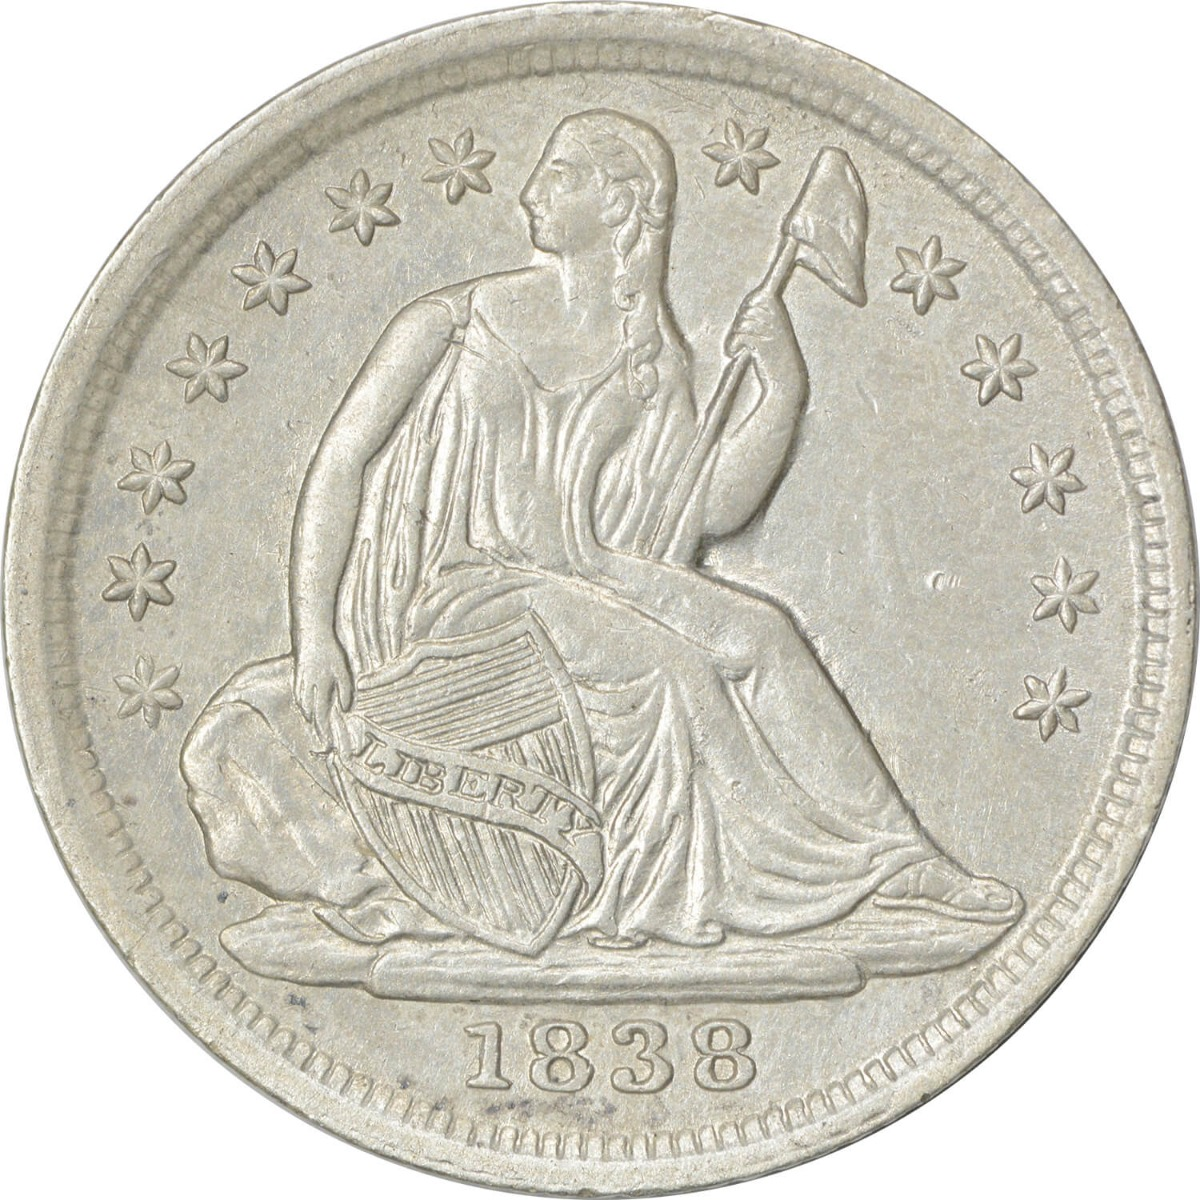 1838 Liberty Seated Silver Half Dime No Drapery Large Stars AU58 Uncertified